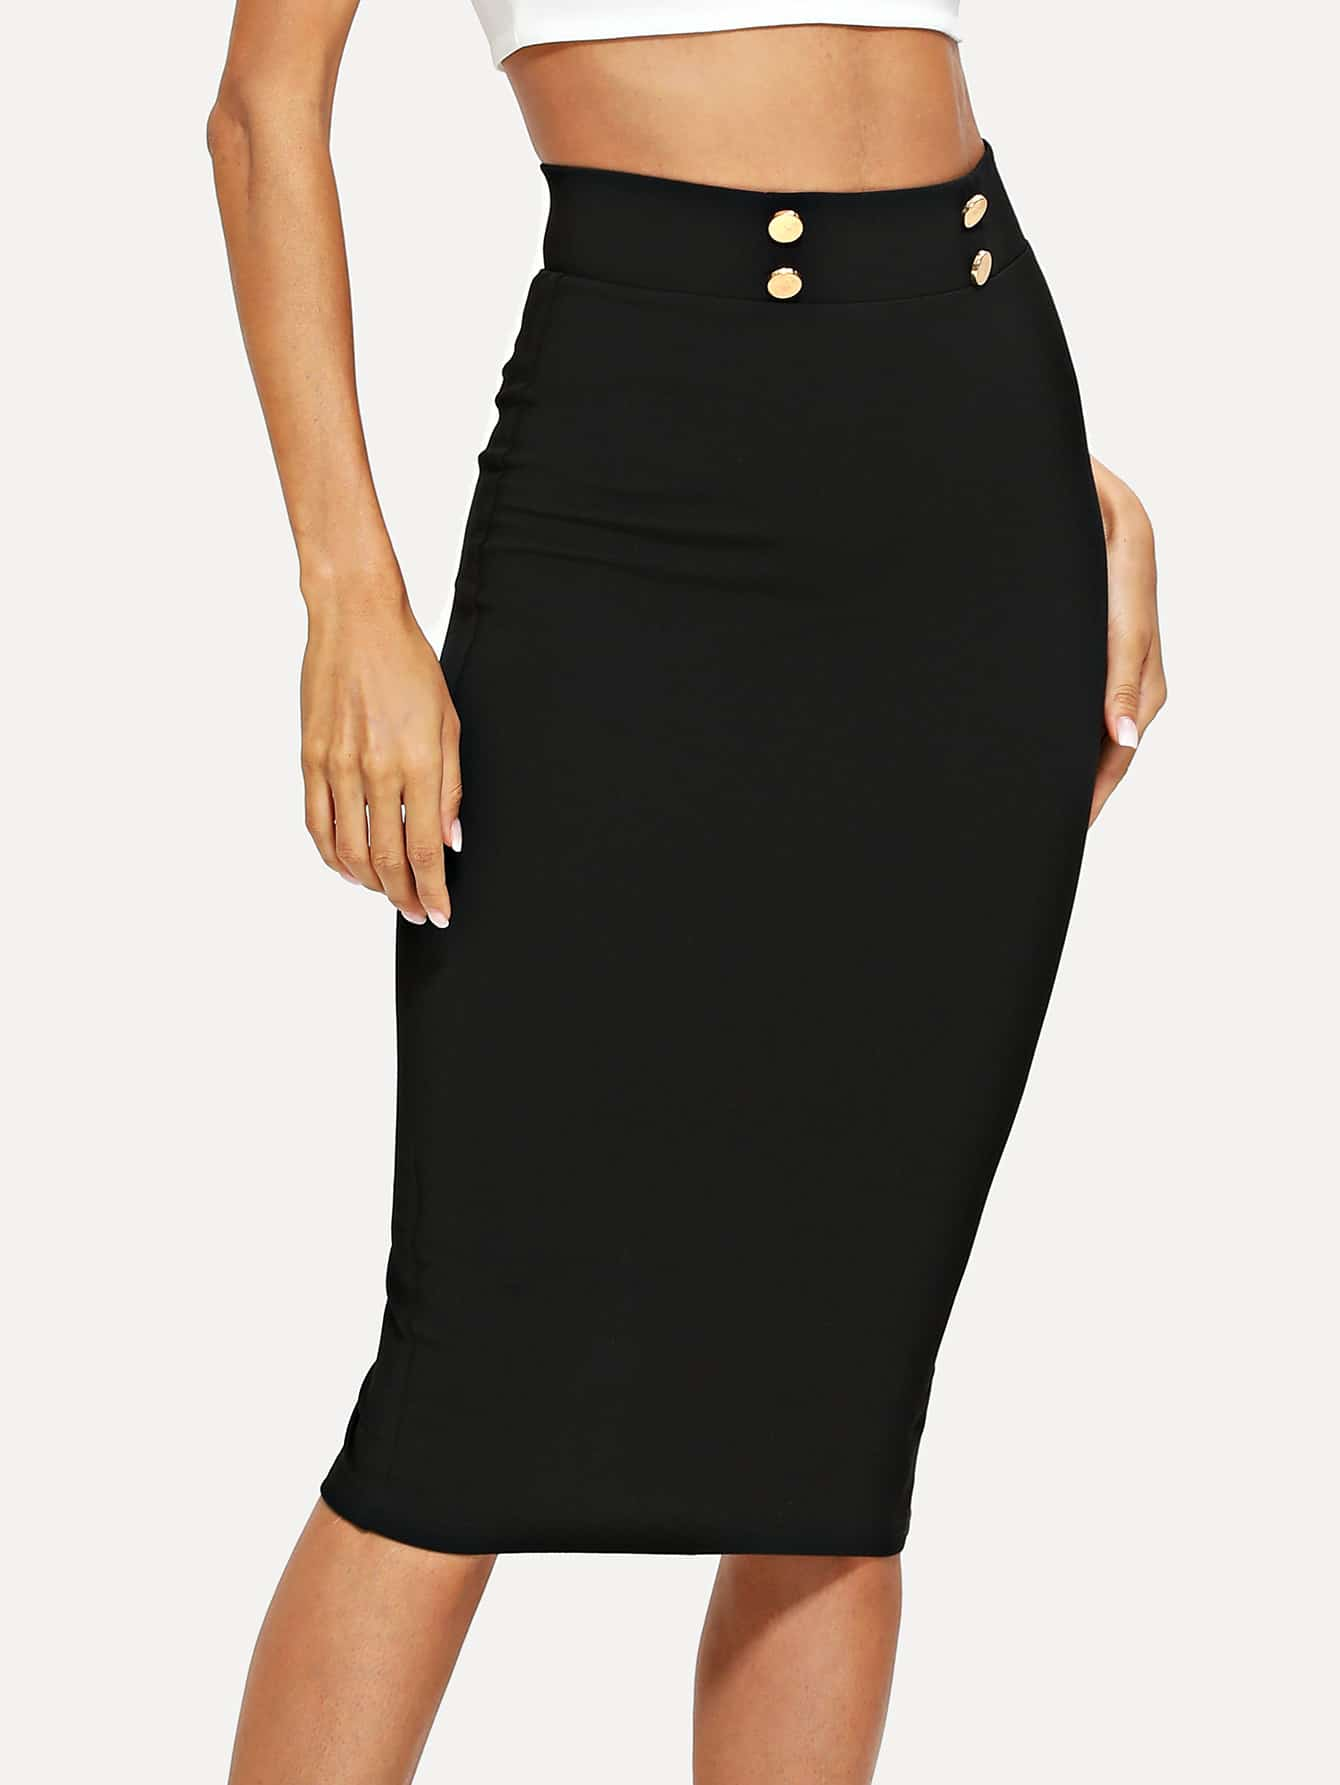 Double Breasted Pencil Skirt double breasted pencil skirt